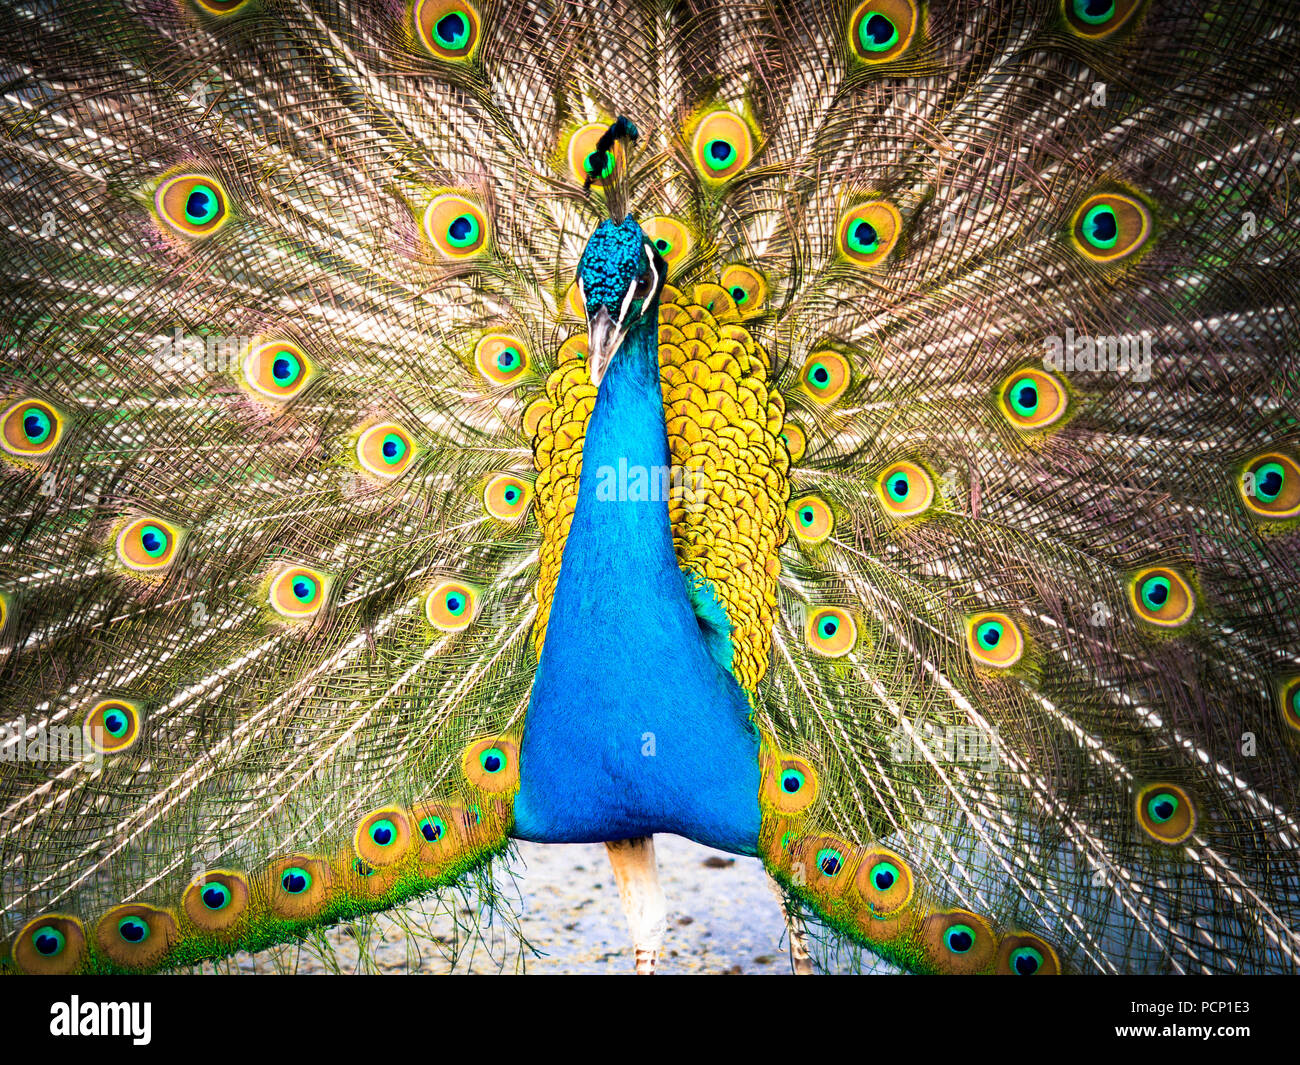 Colorful peacock and its wonderful tail. - Stock Image